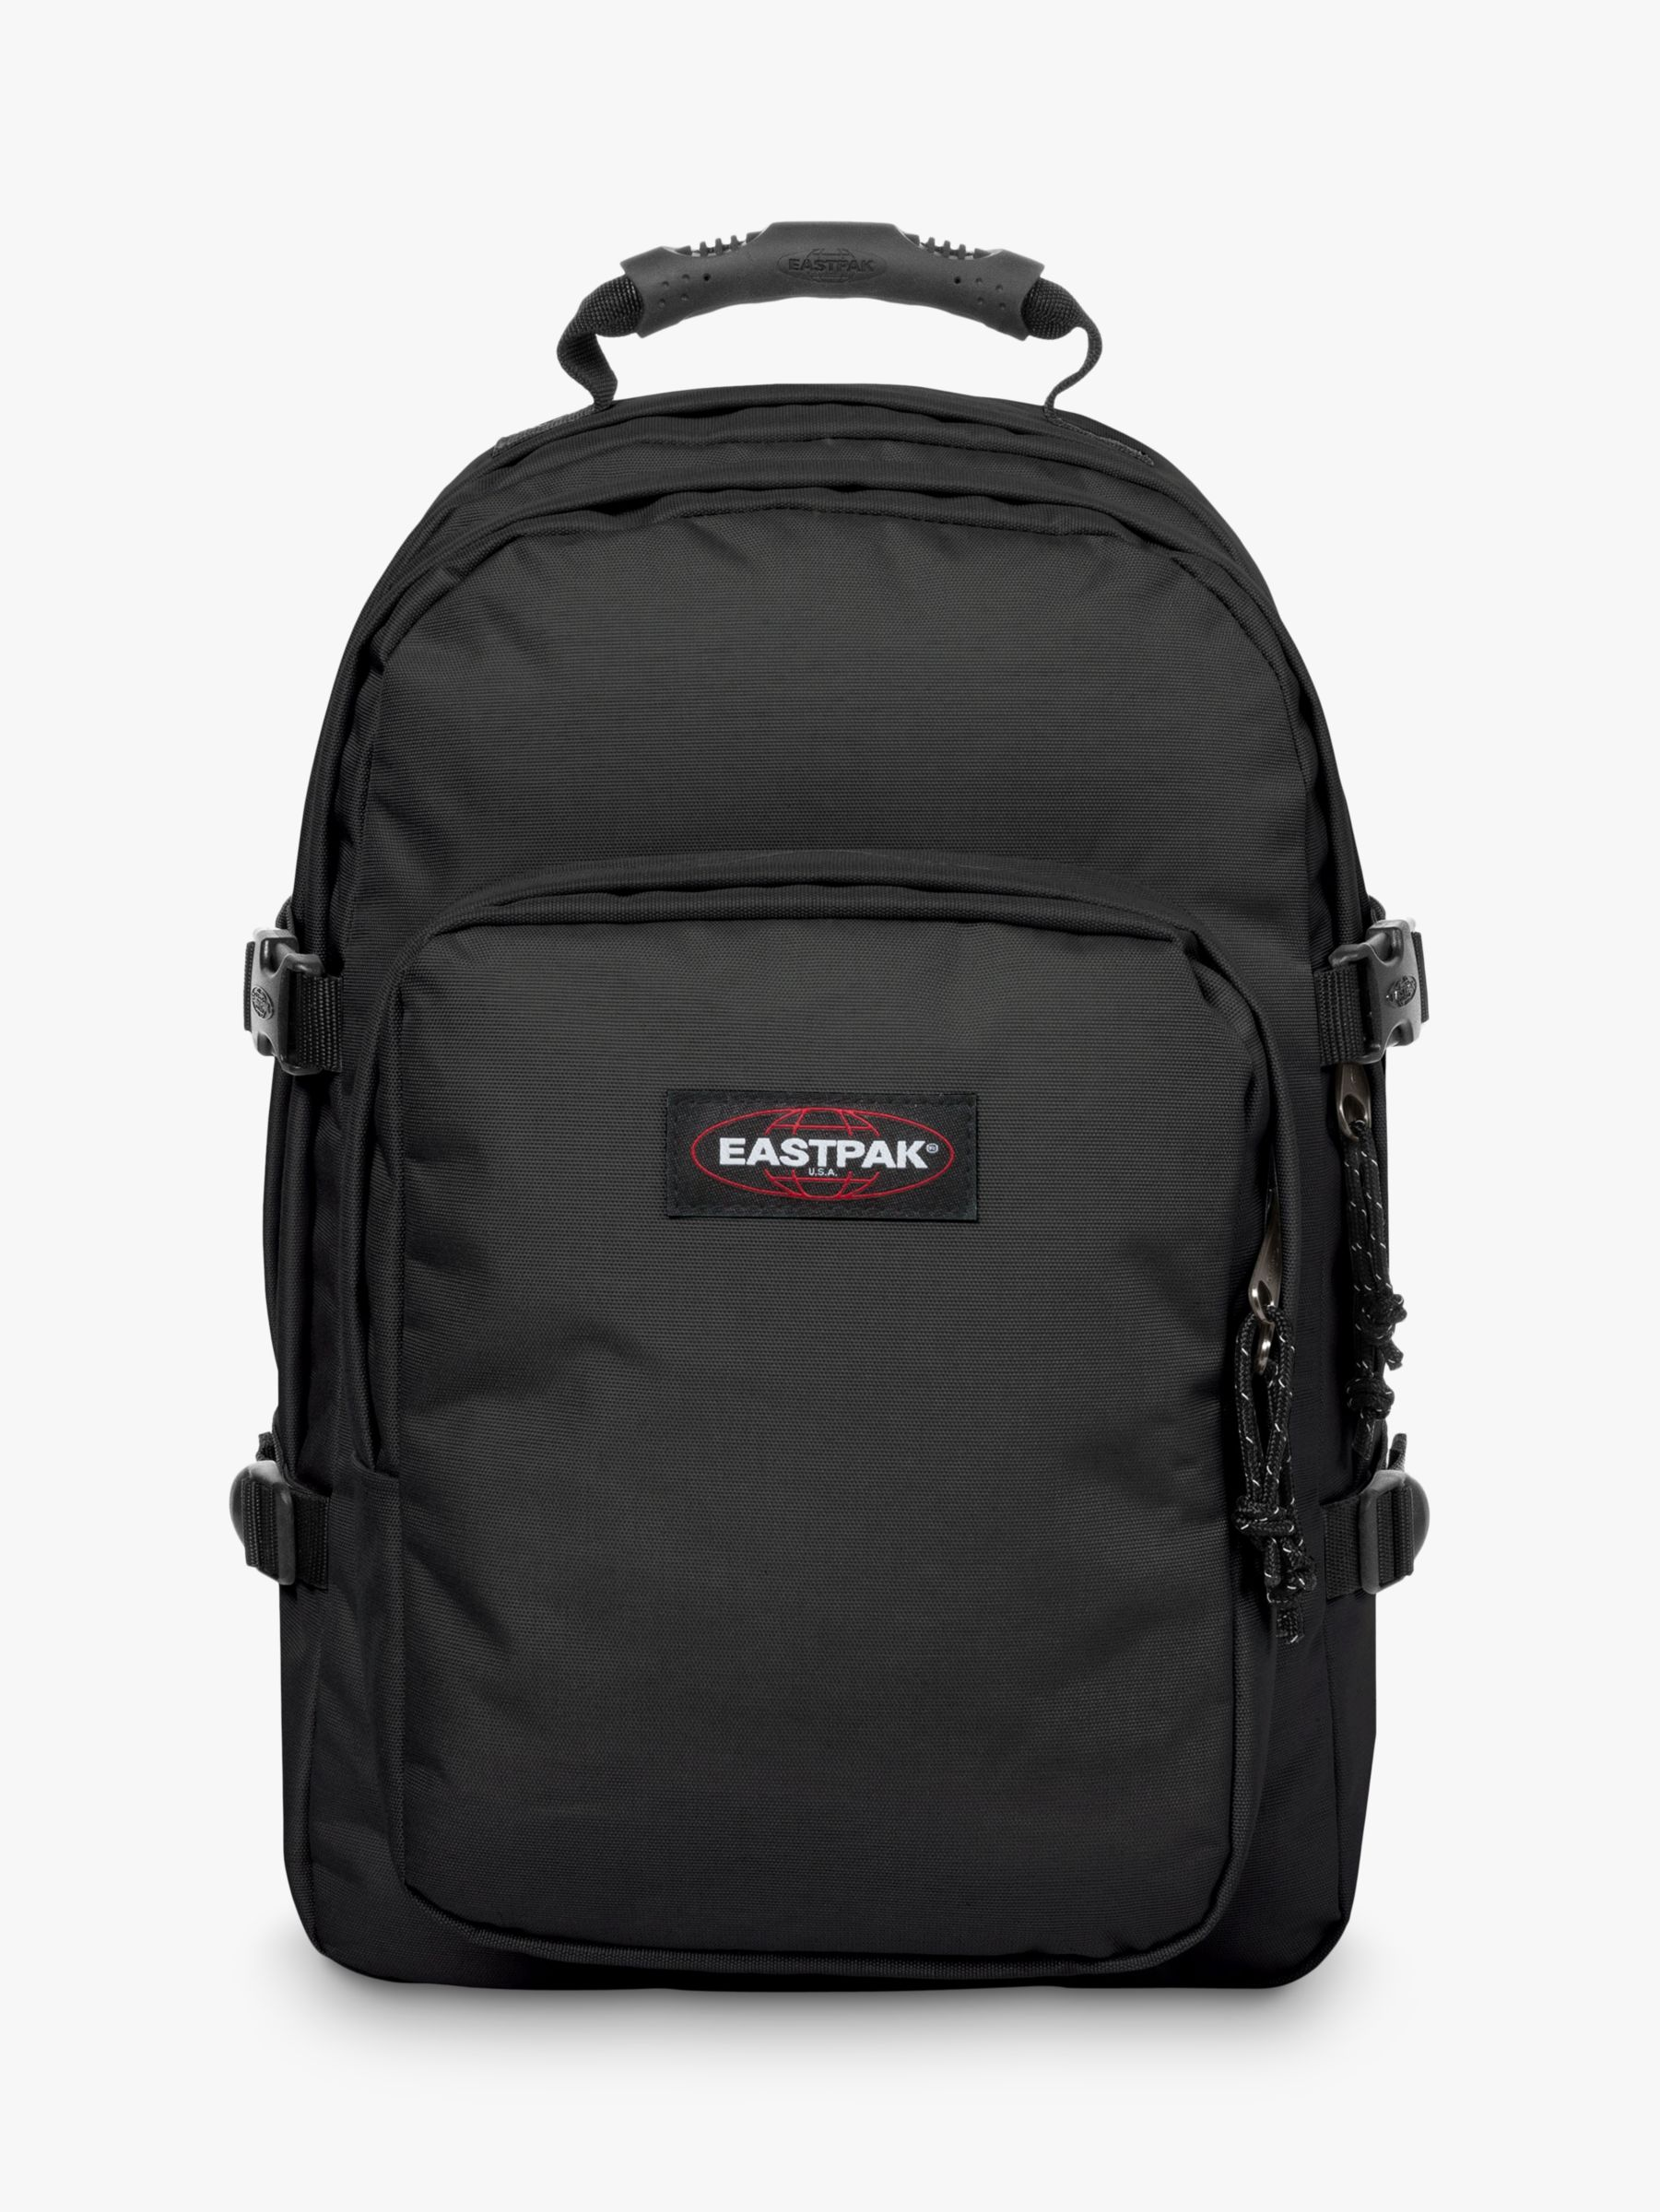 Eastpak Eastpak Provider 15 Laptop Backpack, Black